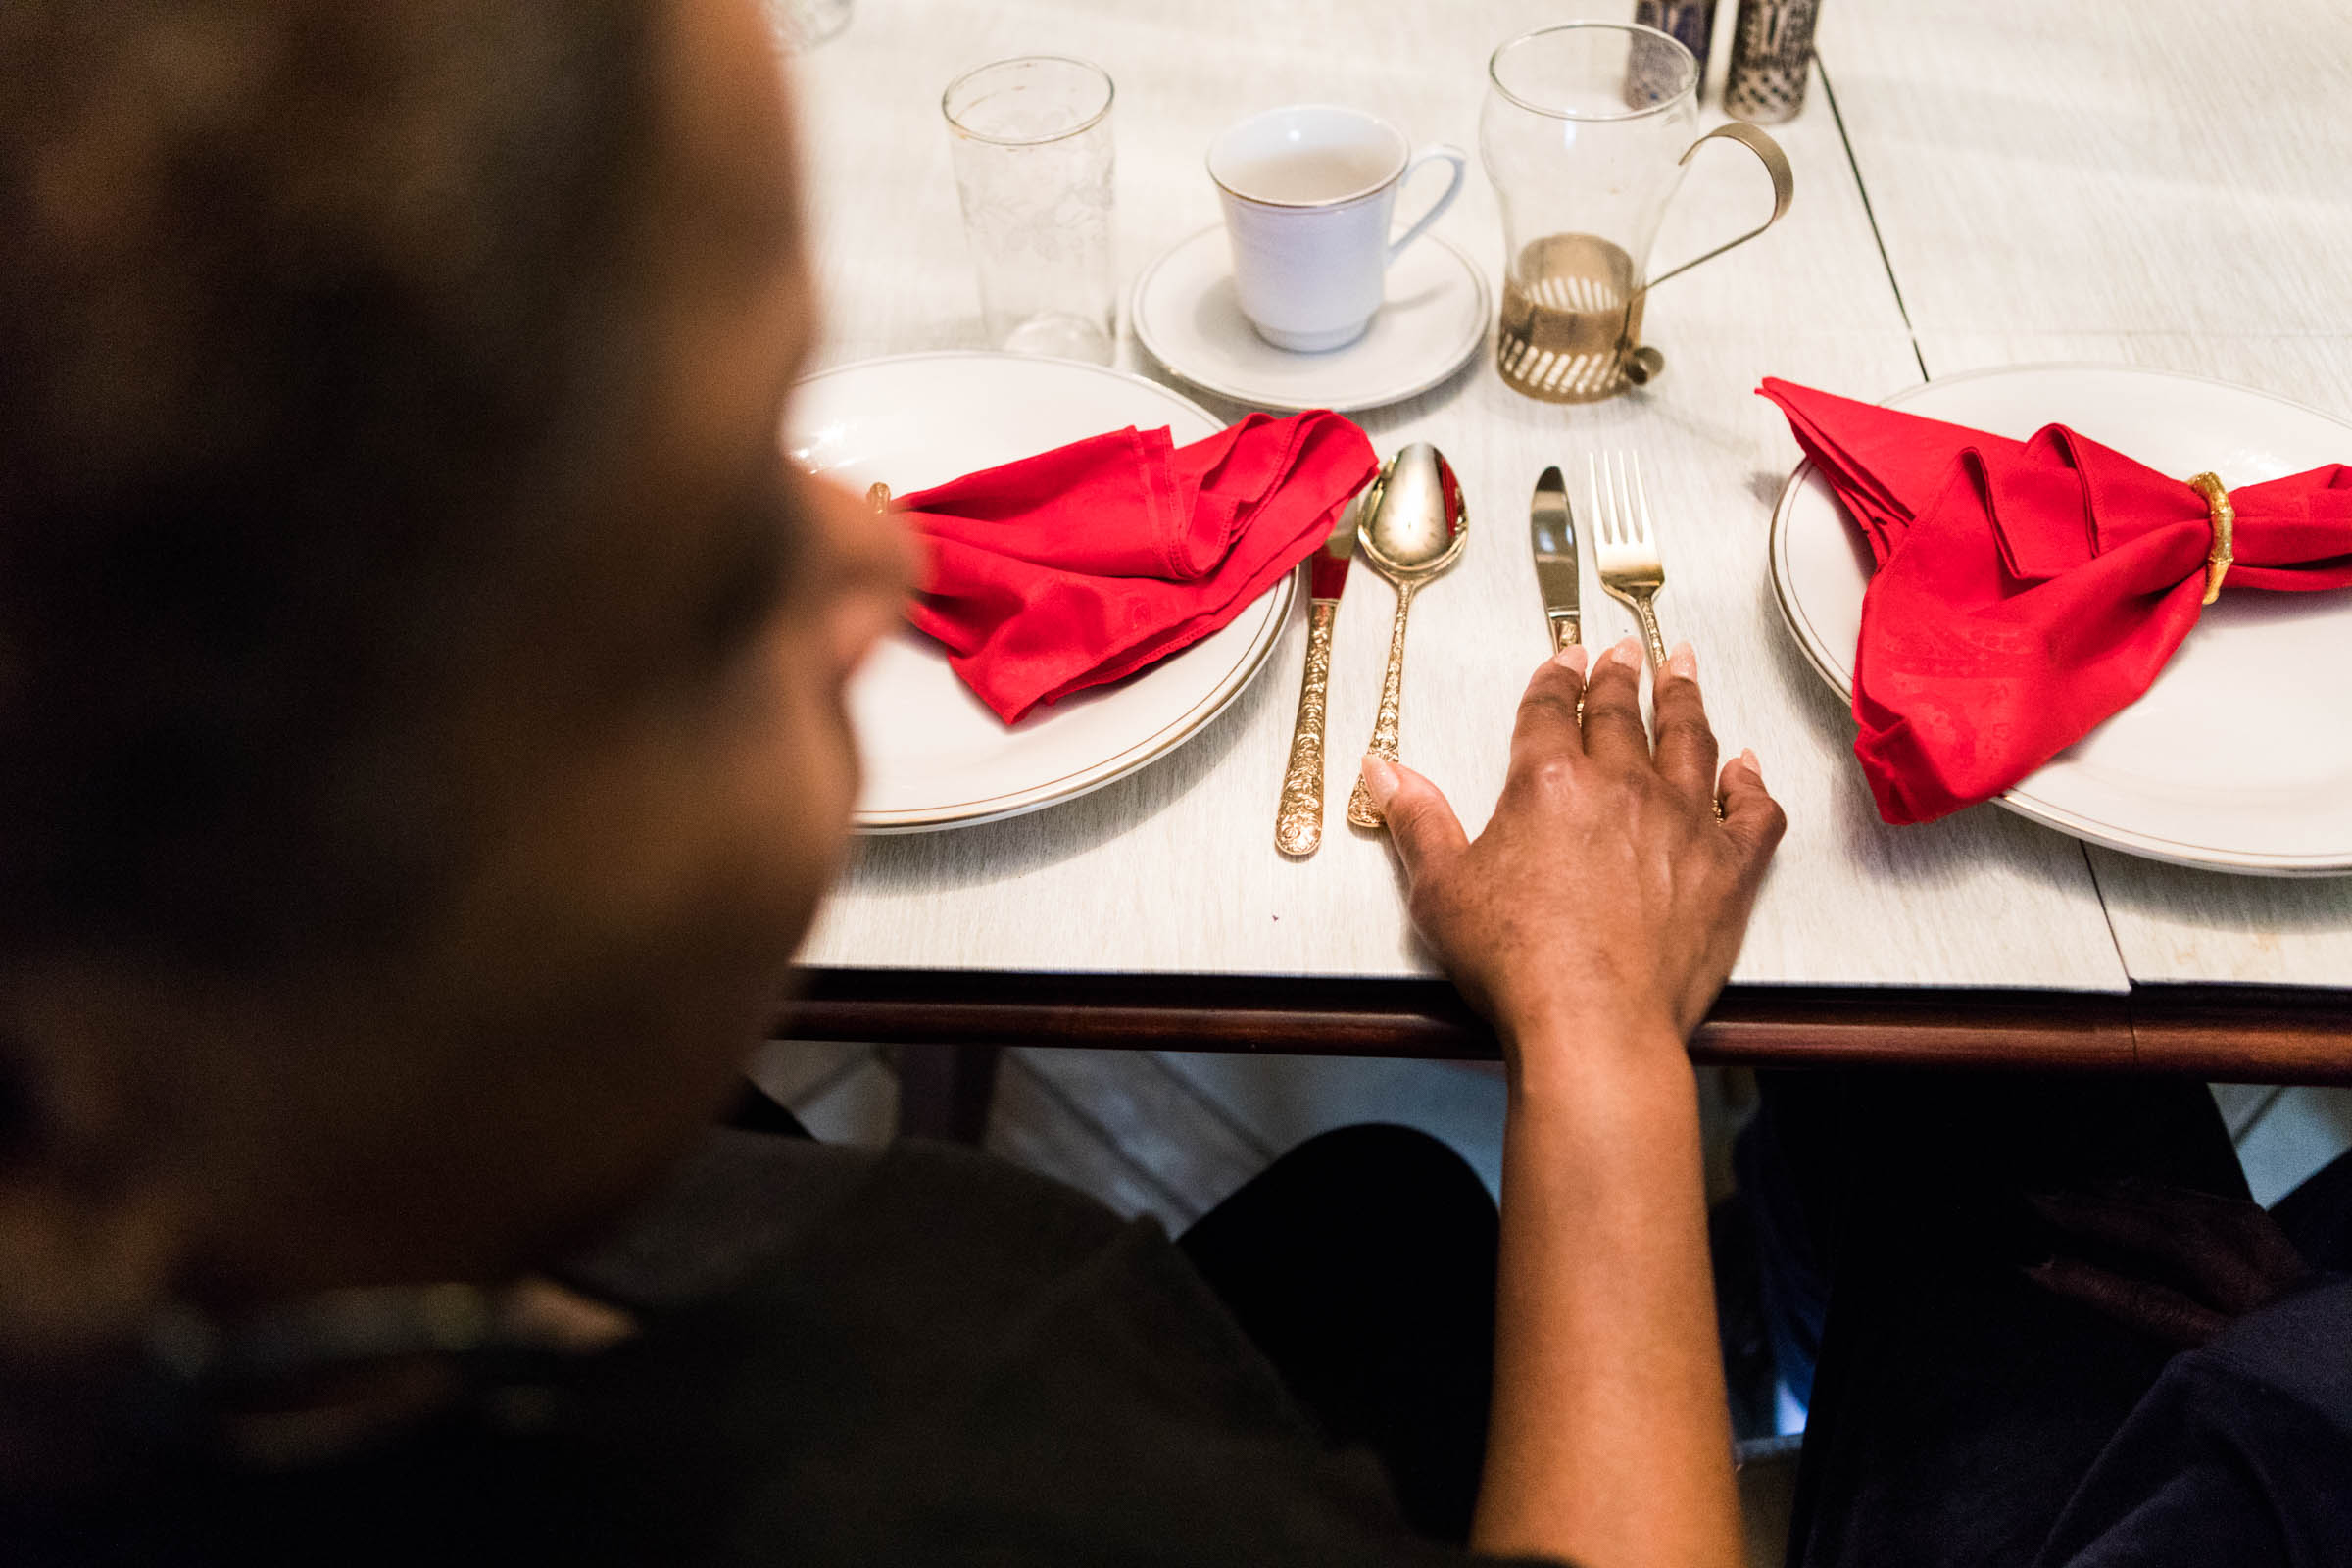 Cheryl Lee-Owens lays her hand on the dining room table of her mother´s Laverock, Pa. home on Friday, February 16, 2018. The fine china, glassware and silverware are family heirlooms.